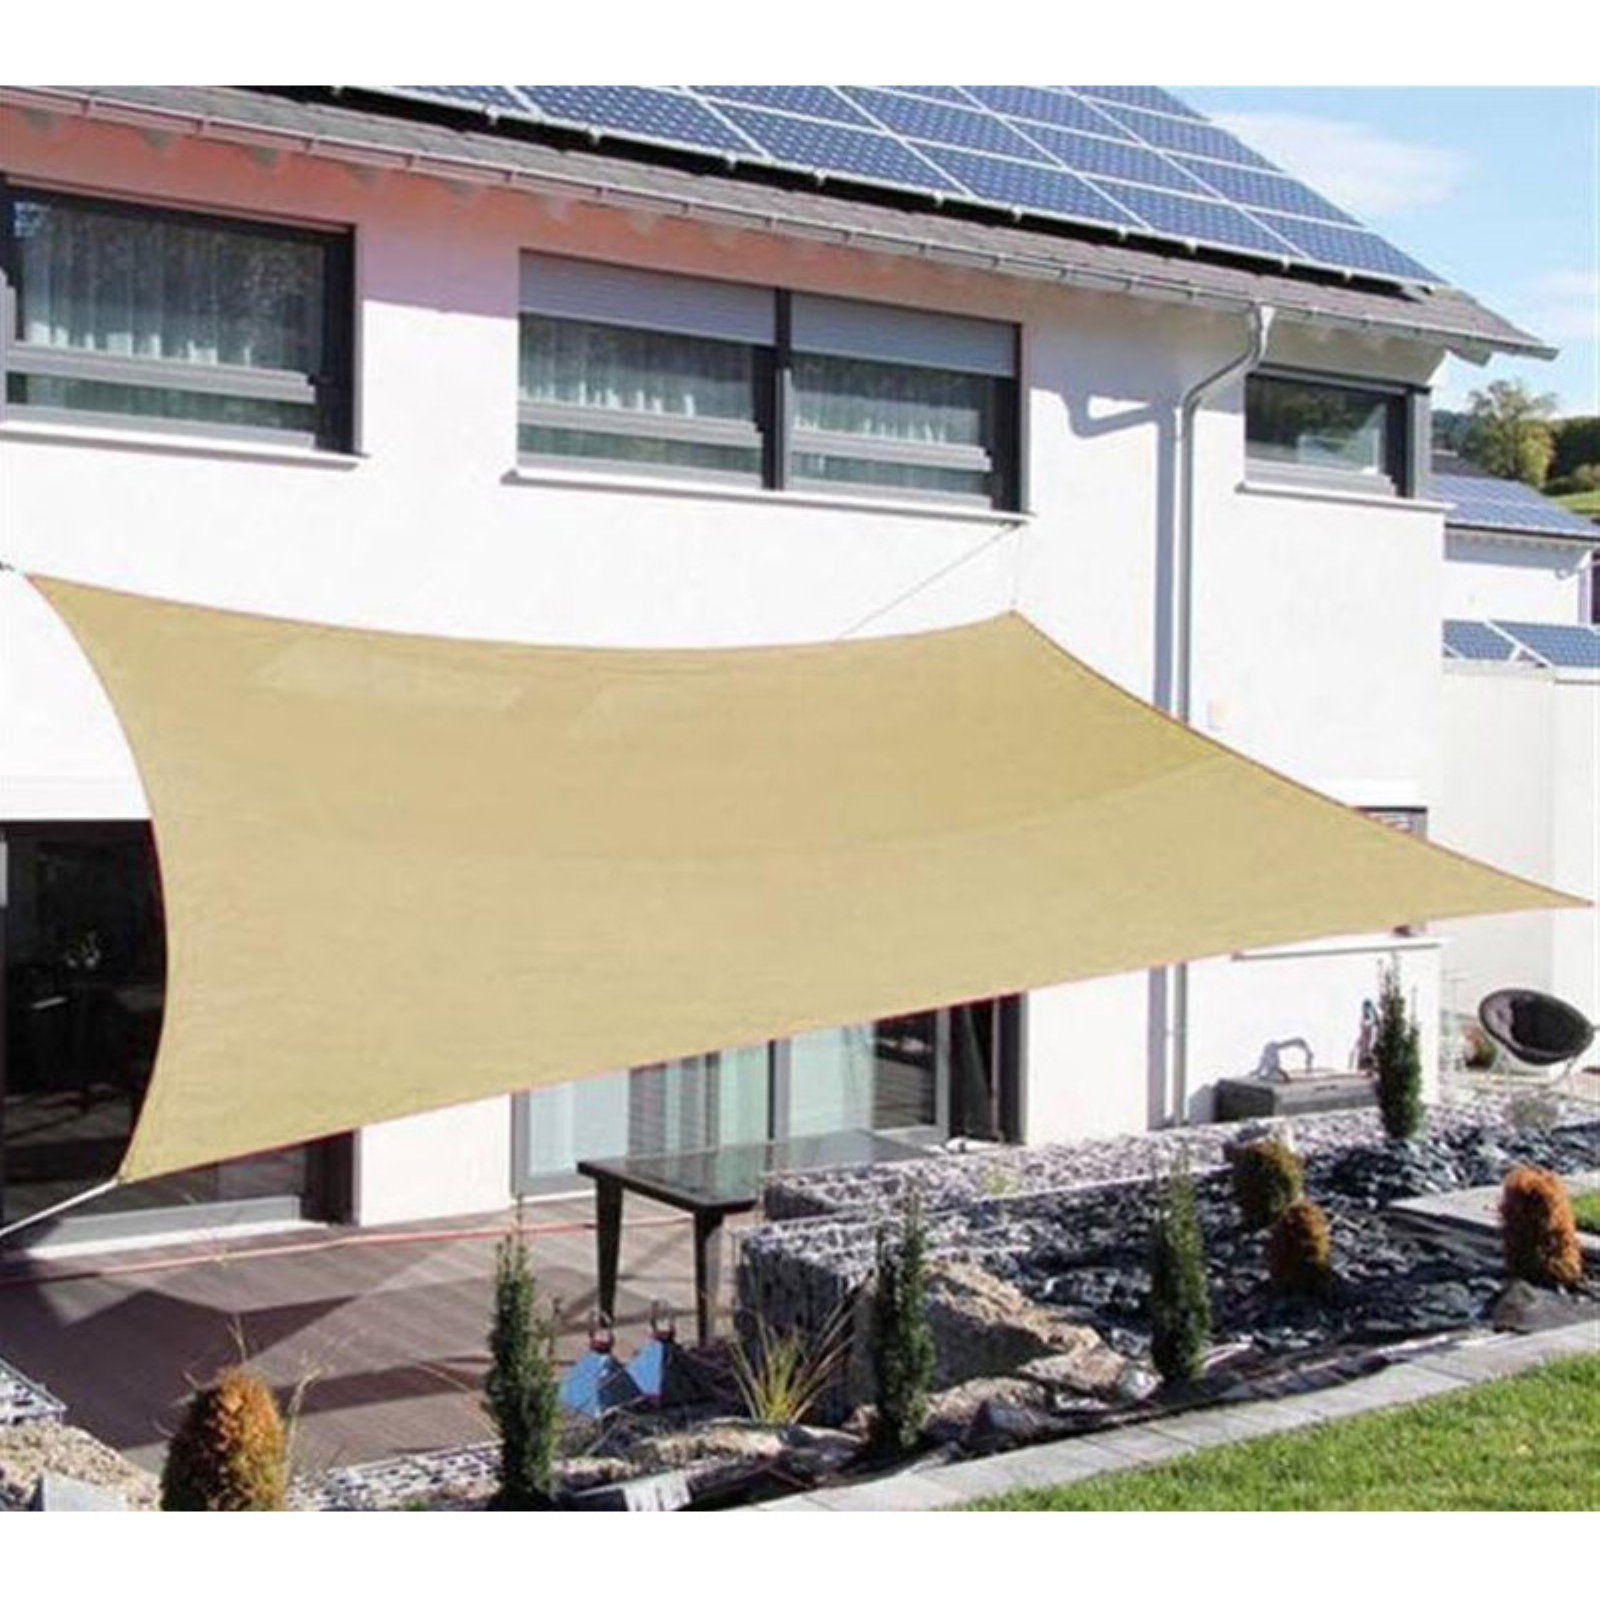 sale retailer 8249c f0692 Outsunny Rectangle Outdoor Sun Shade Sail Canopy - Sand ...